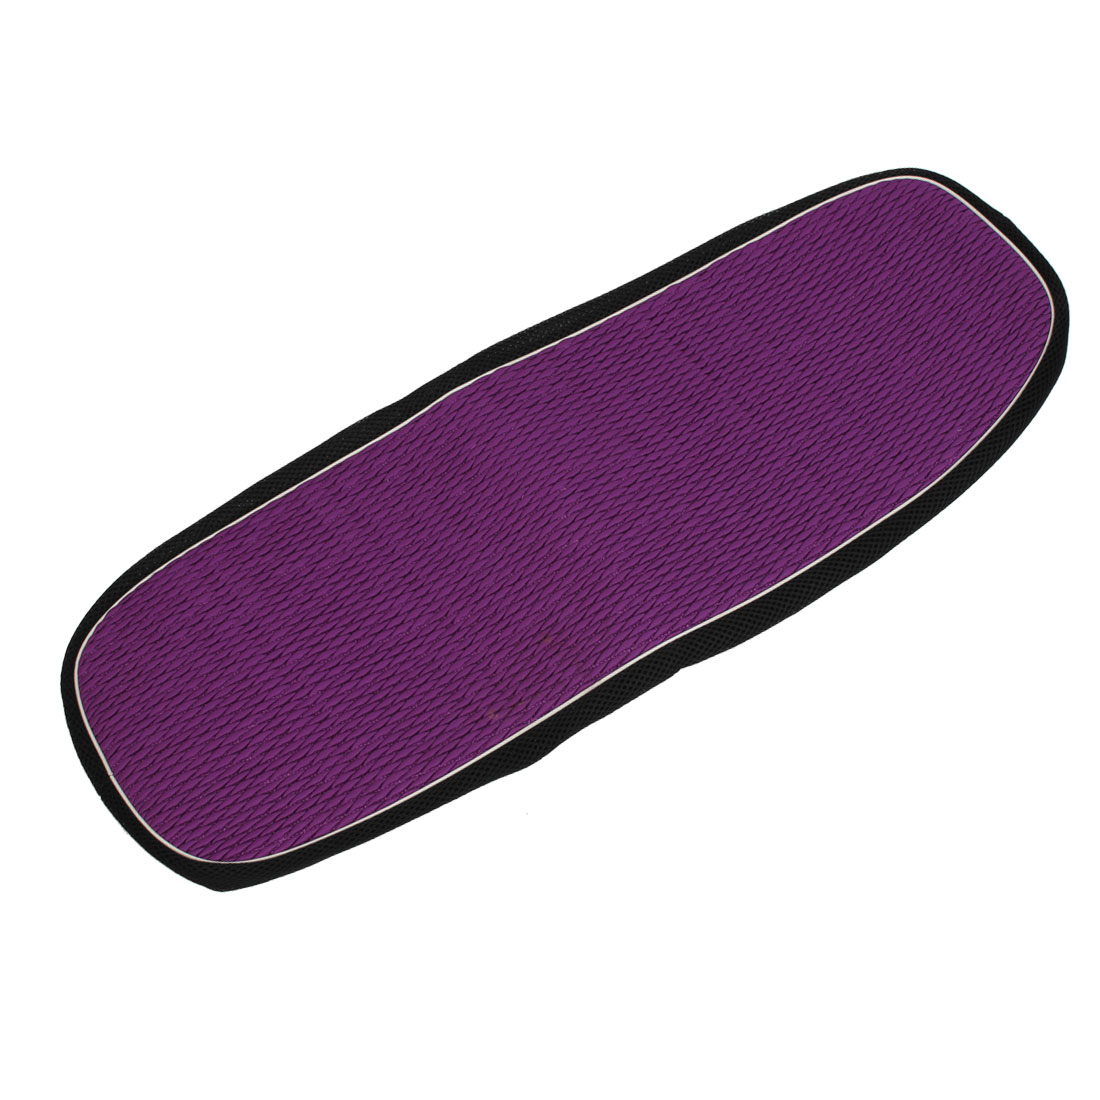 Motorcycle Seat Cover Mesh Breathable Elastic Adiabatic Saddle Pad Purple